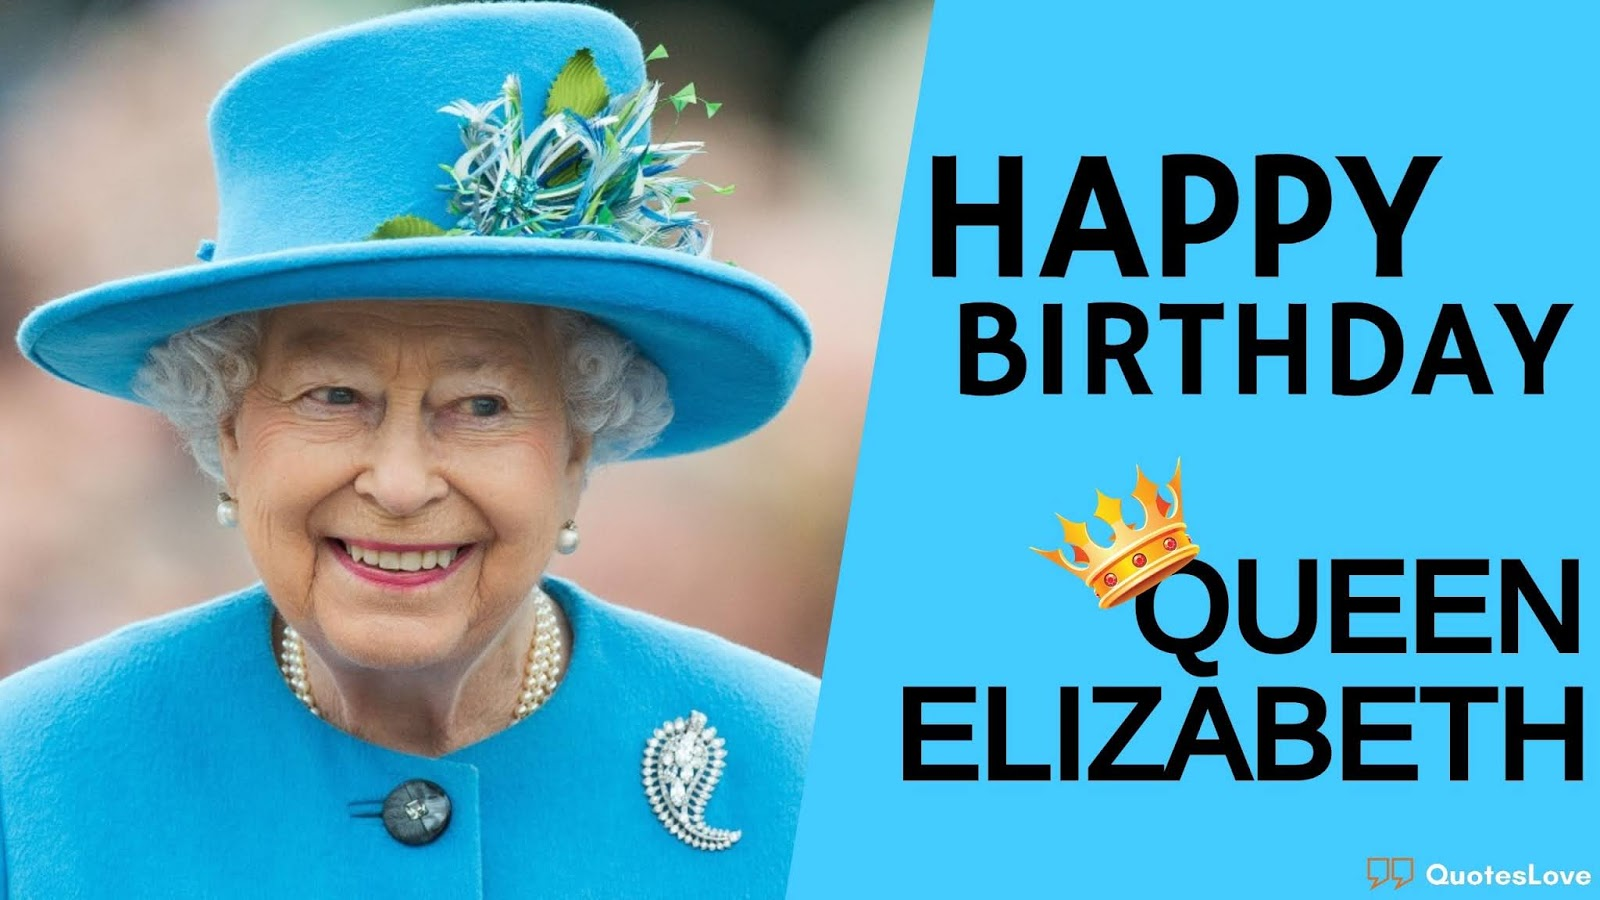 Queen's Birthday Images, Pictures, Posters